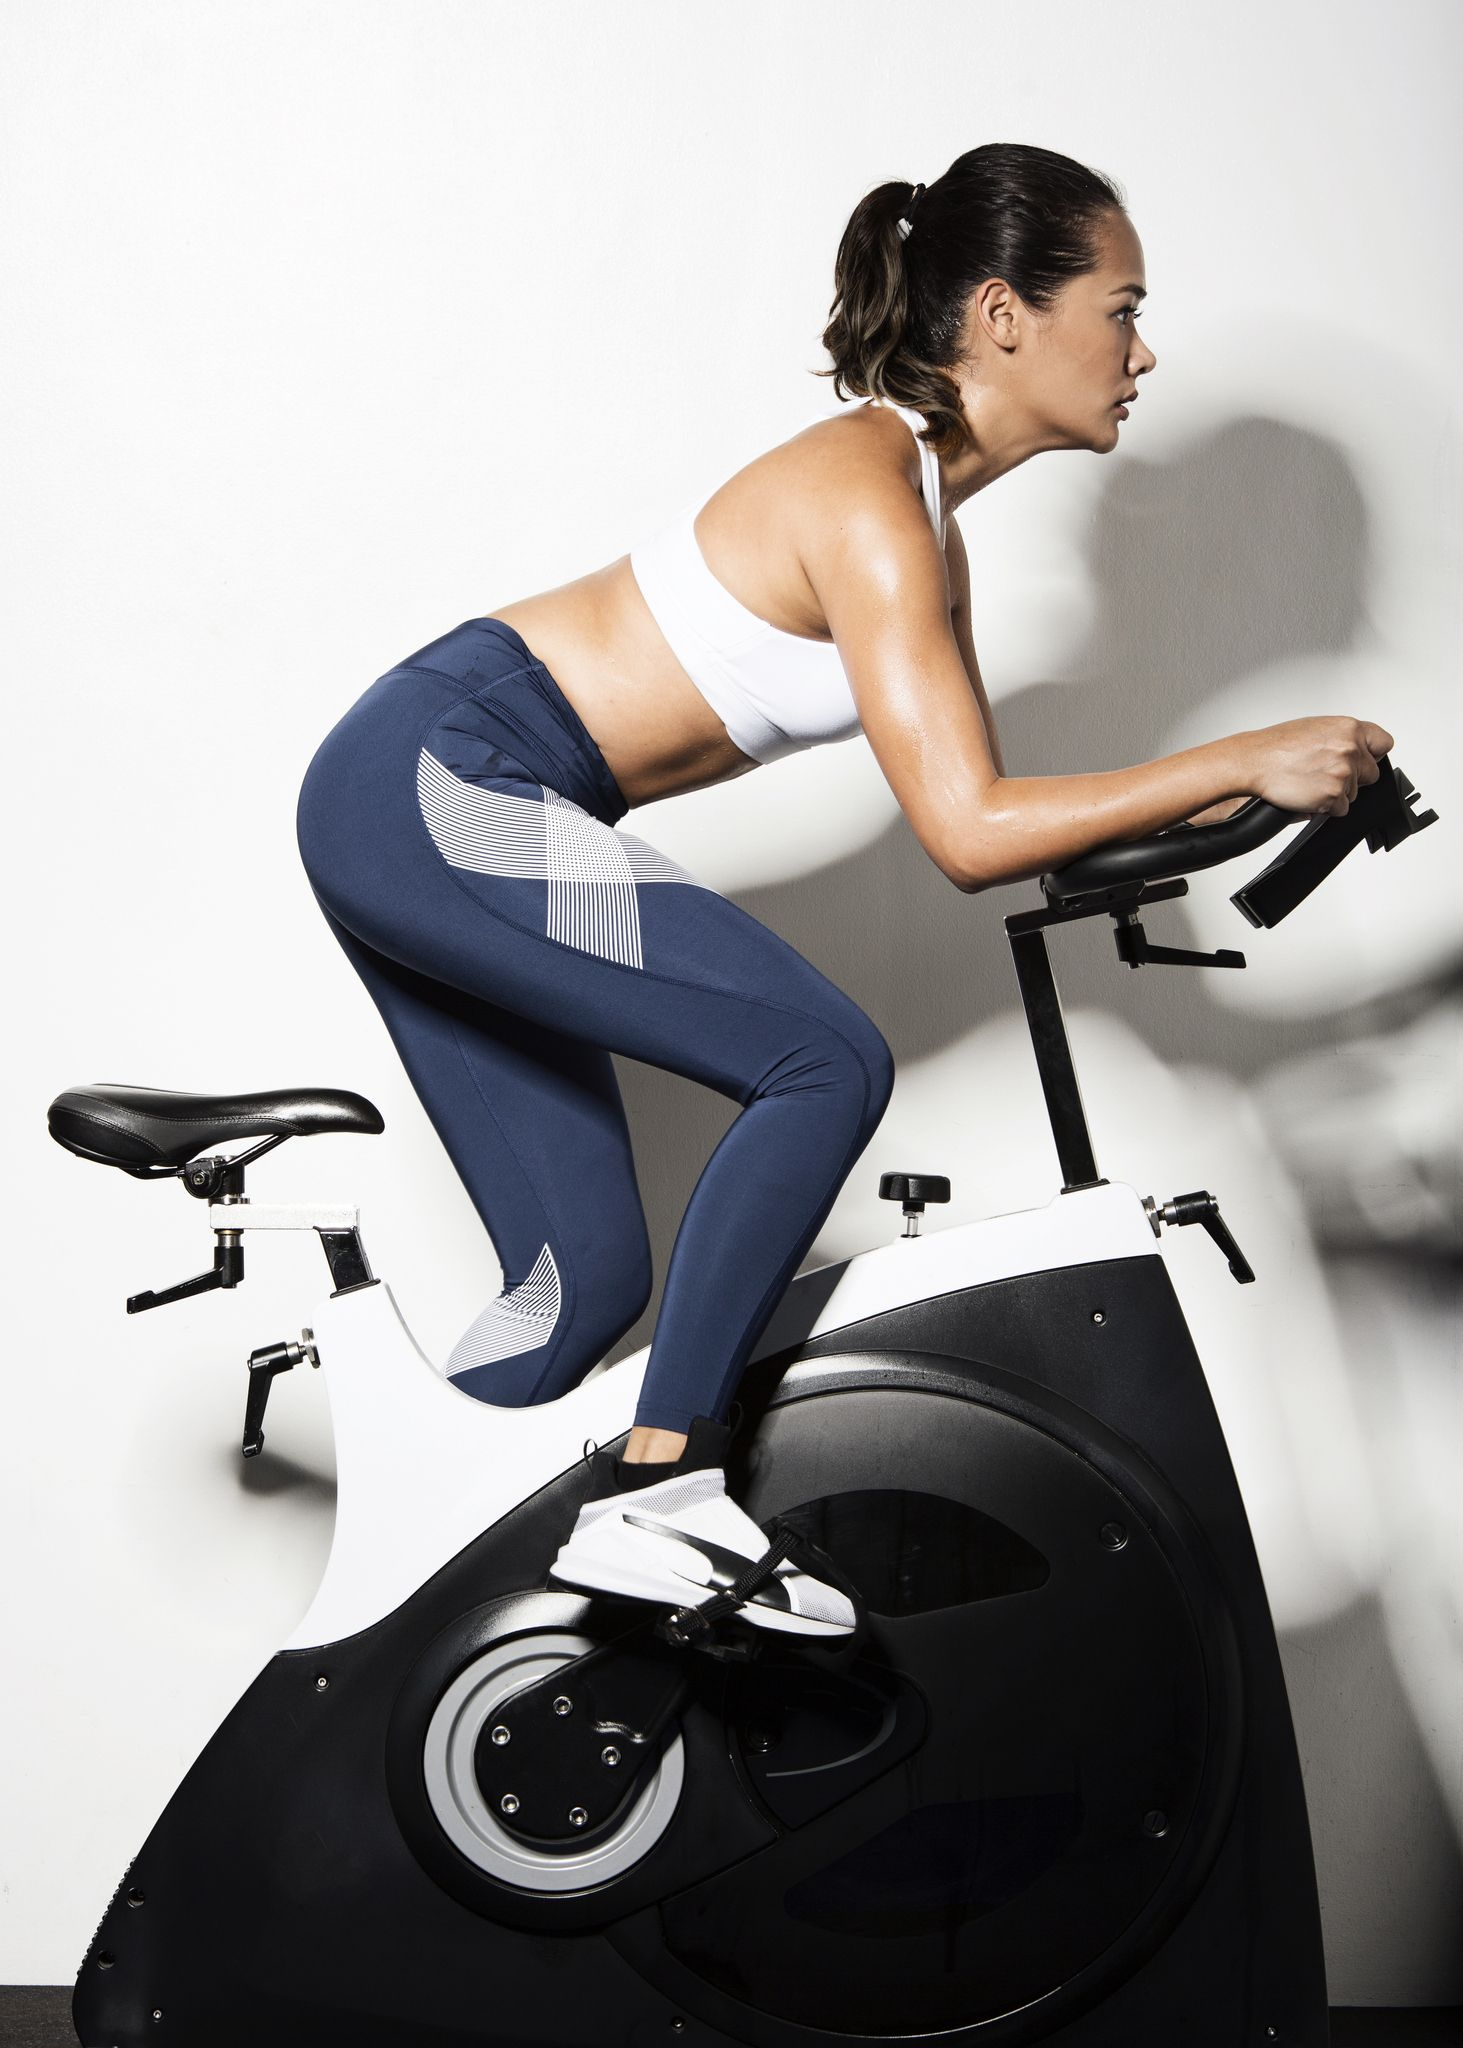 stationary bike interval workout for weight loss